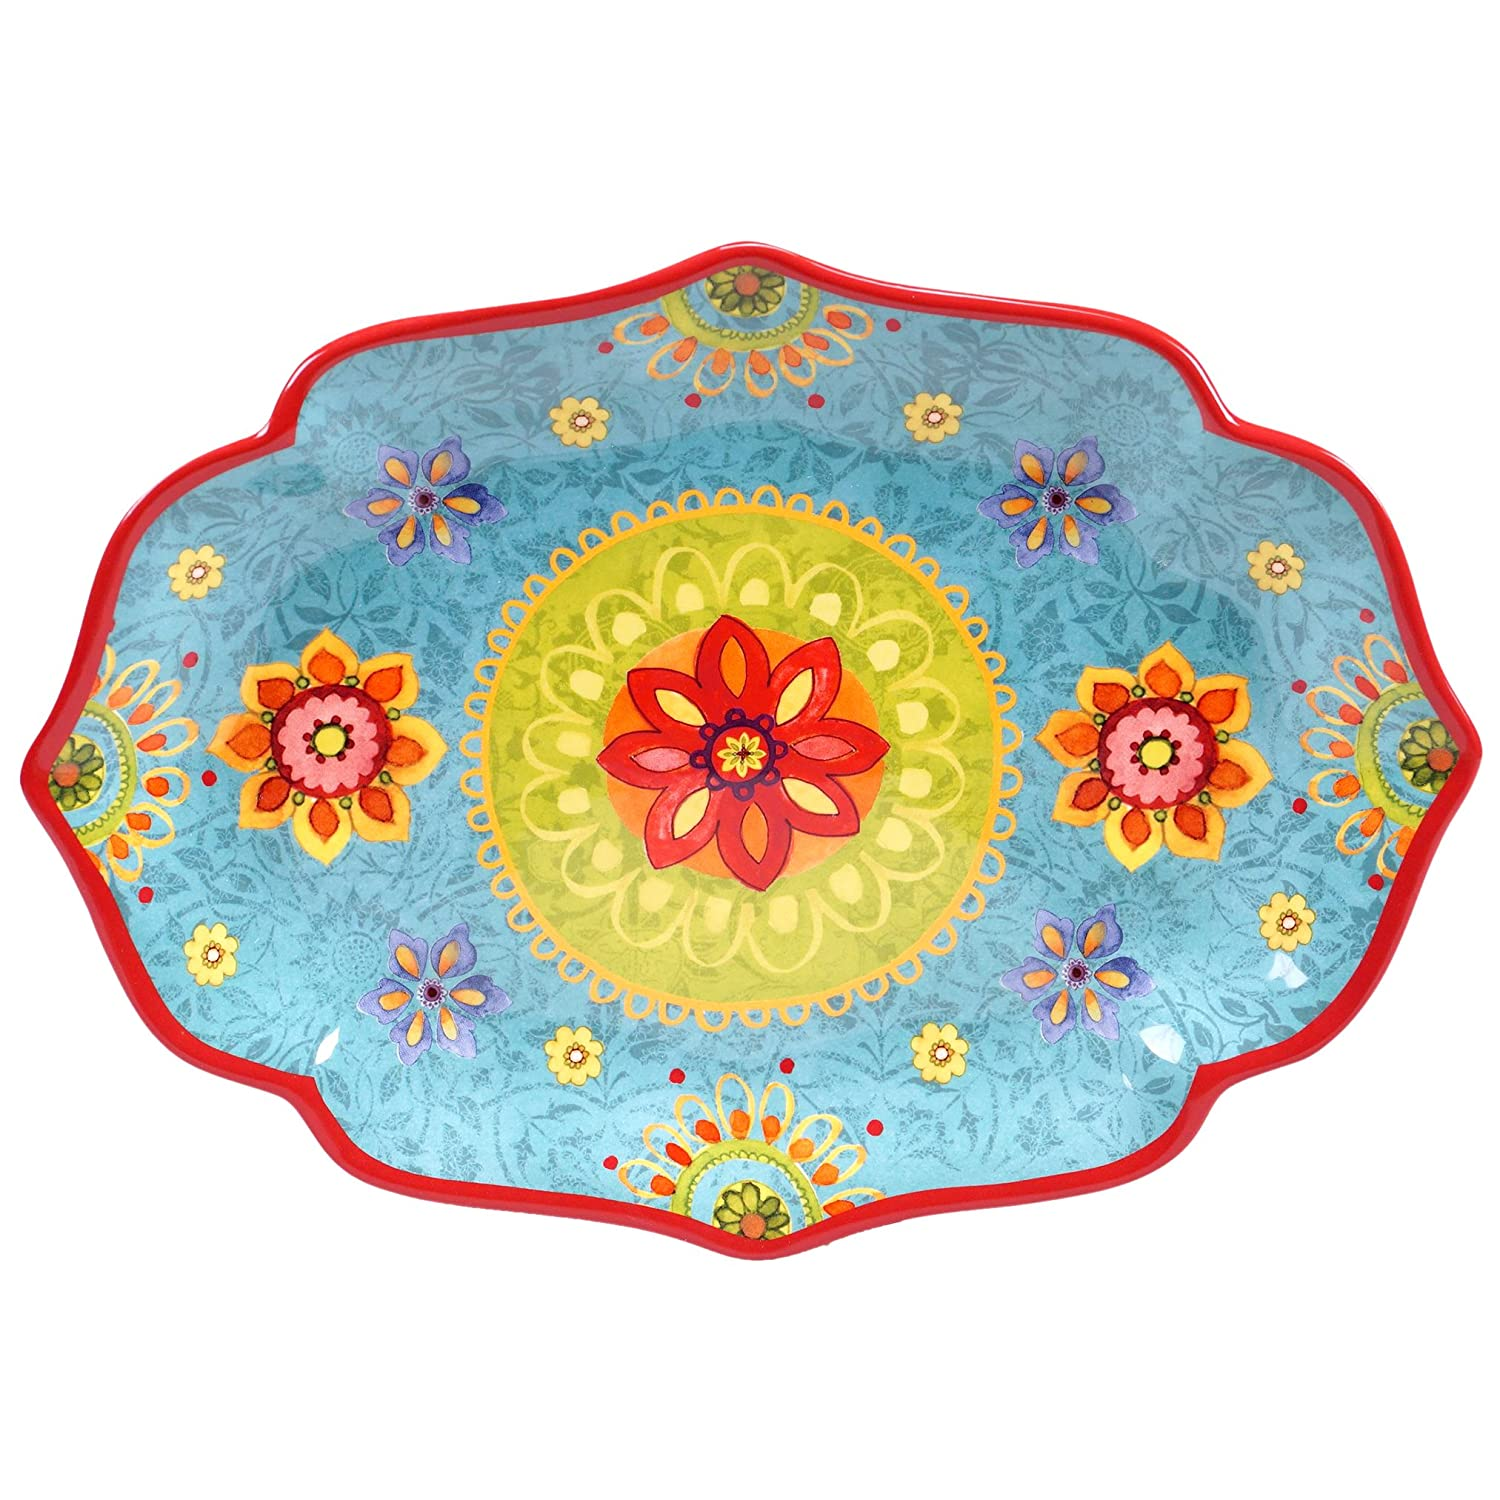 Certified International 22459 Tunisian Sunset Oval Platter, 16